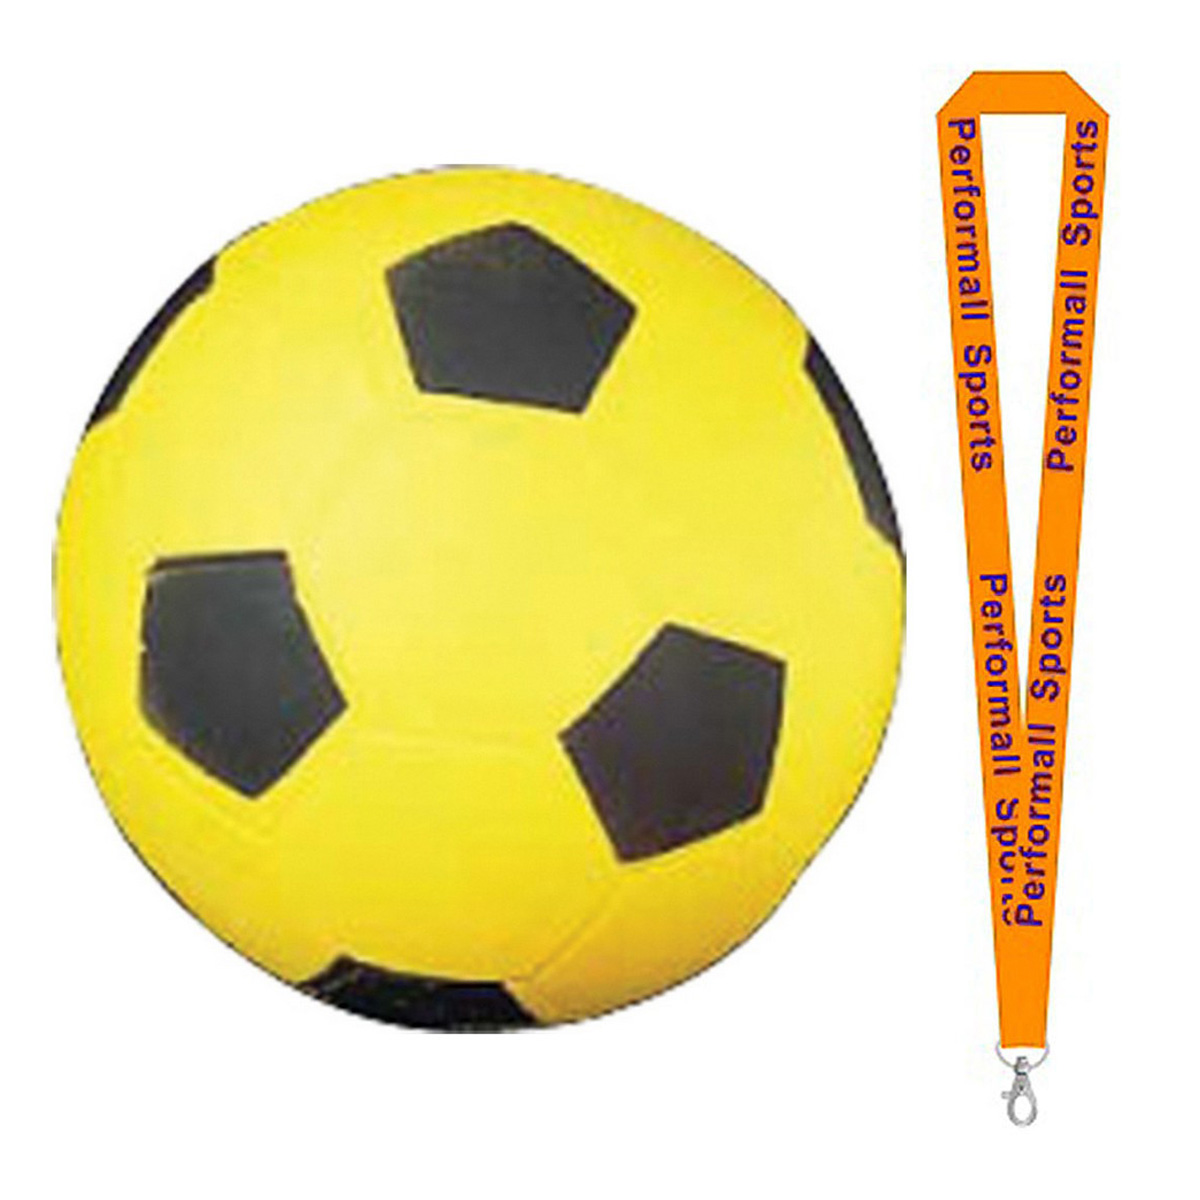 Champion Sports Bundle: Coated High Density Foam Soccer Ball Black / Yellow with 1 Performall Lanyard SFC-1P